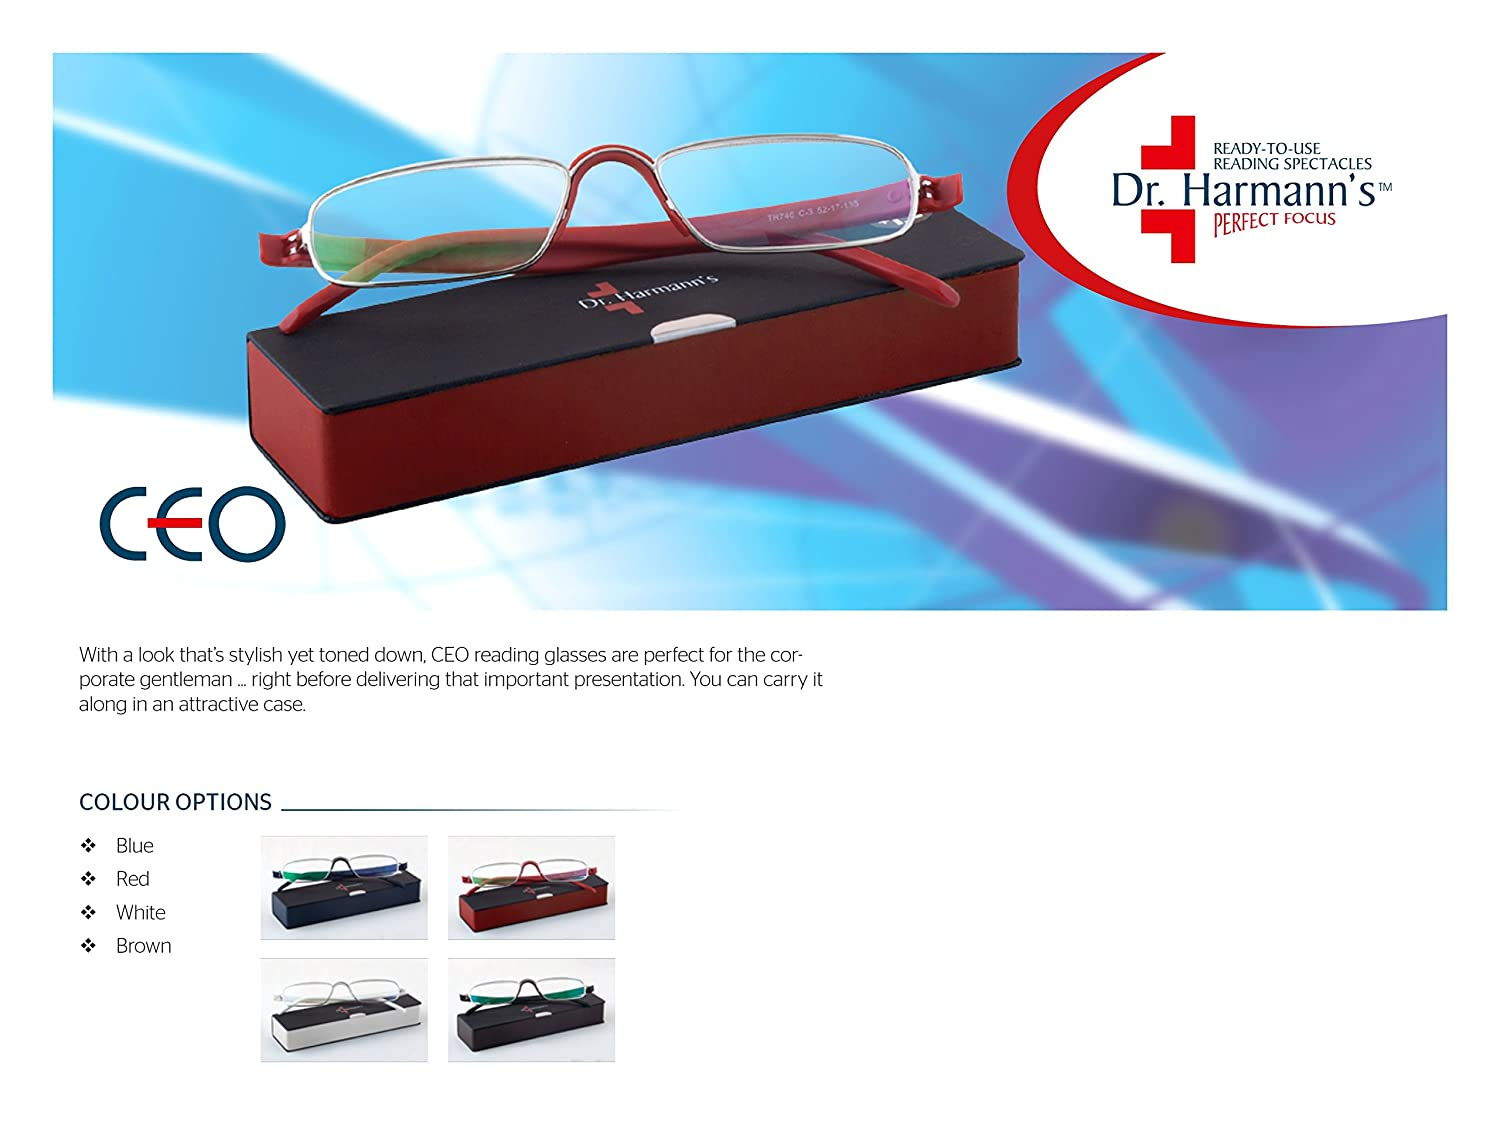 d8ff4ee2c94 Dr. Harmann s CEO Metal Folding Reading Glasses With Premium Soft Feel Hard  Case (+2.50